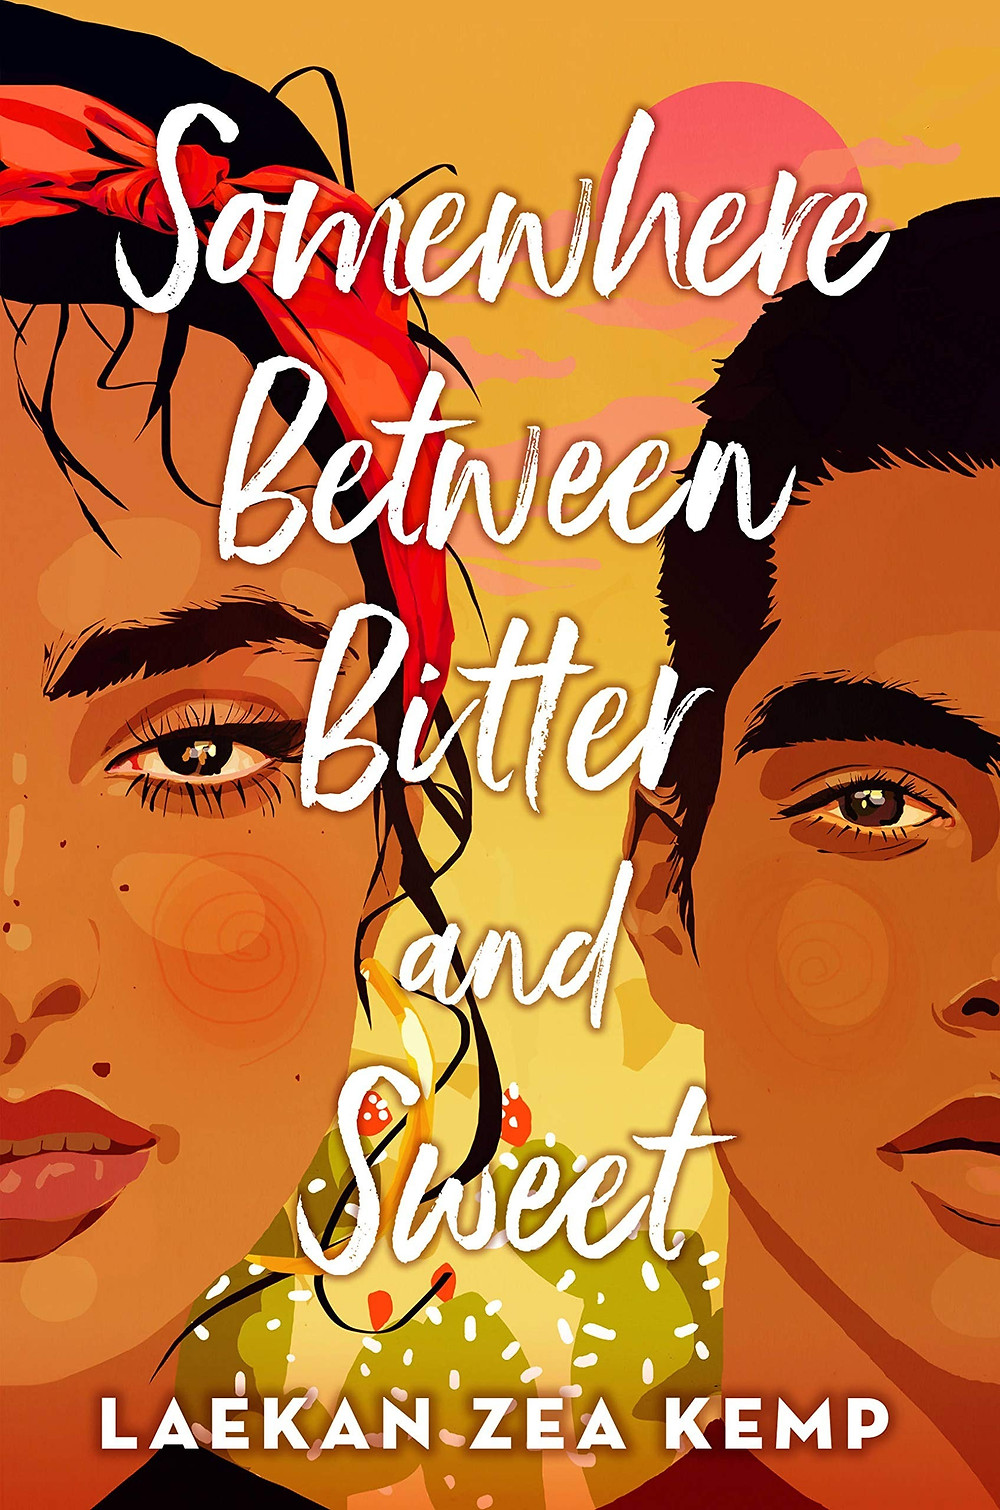 Book cover of Somewhere Between Bitter and Sweet by Laekan Zea Kemp